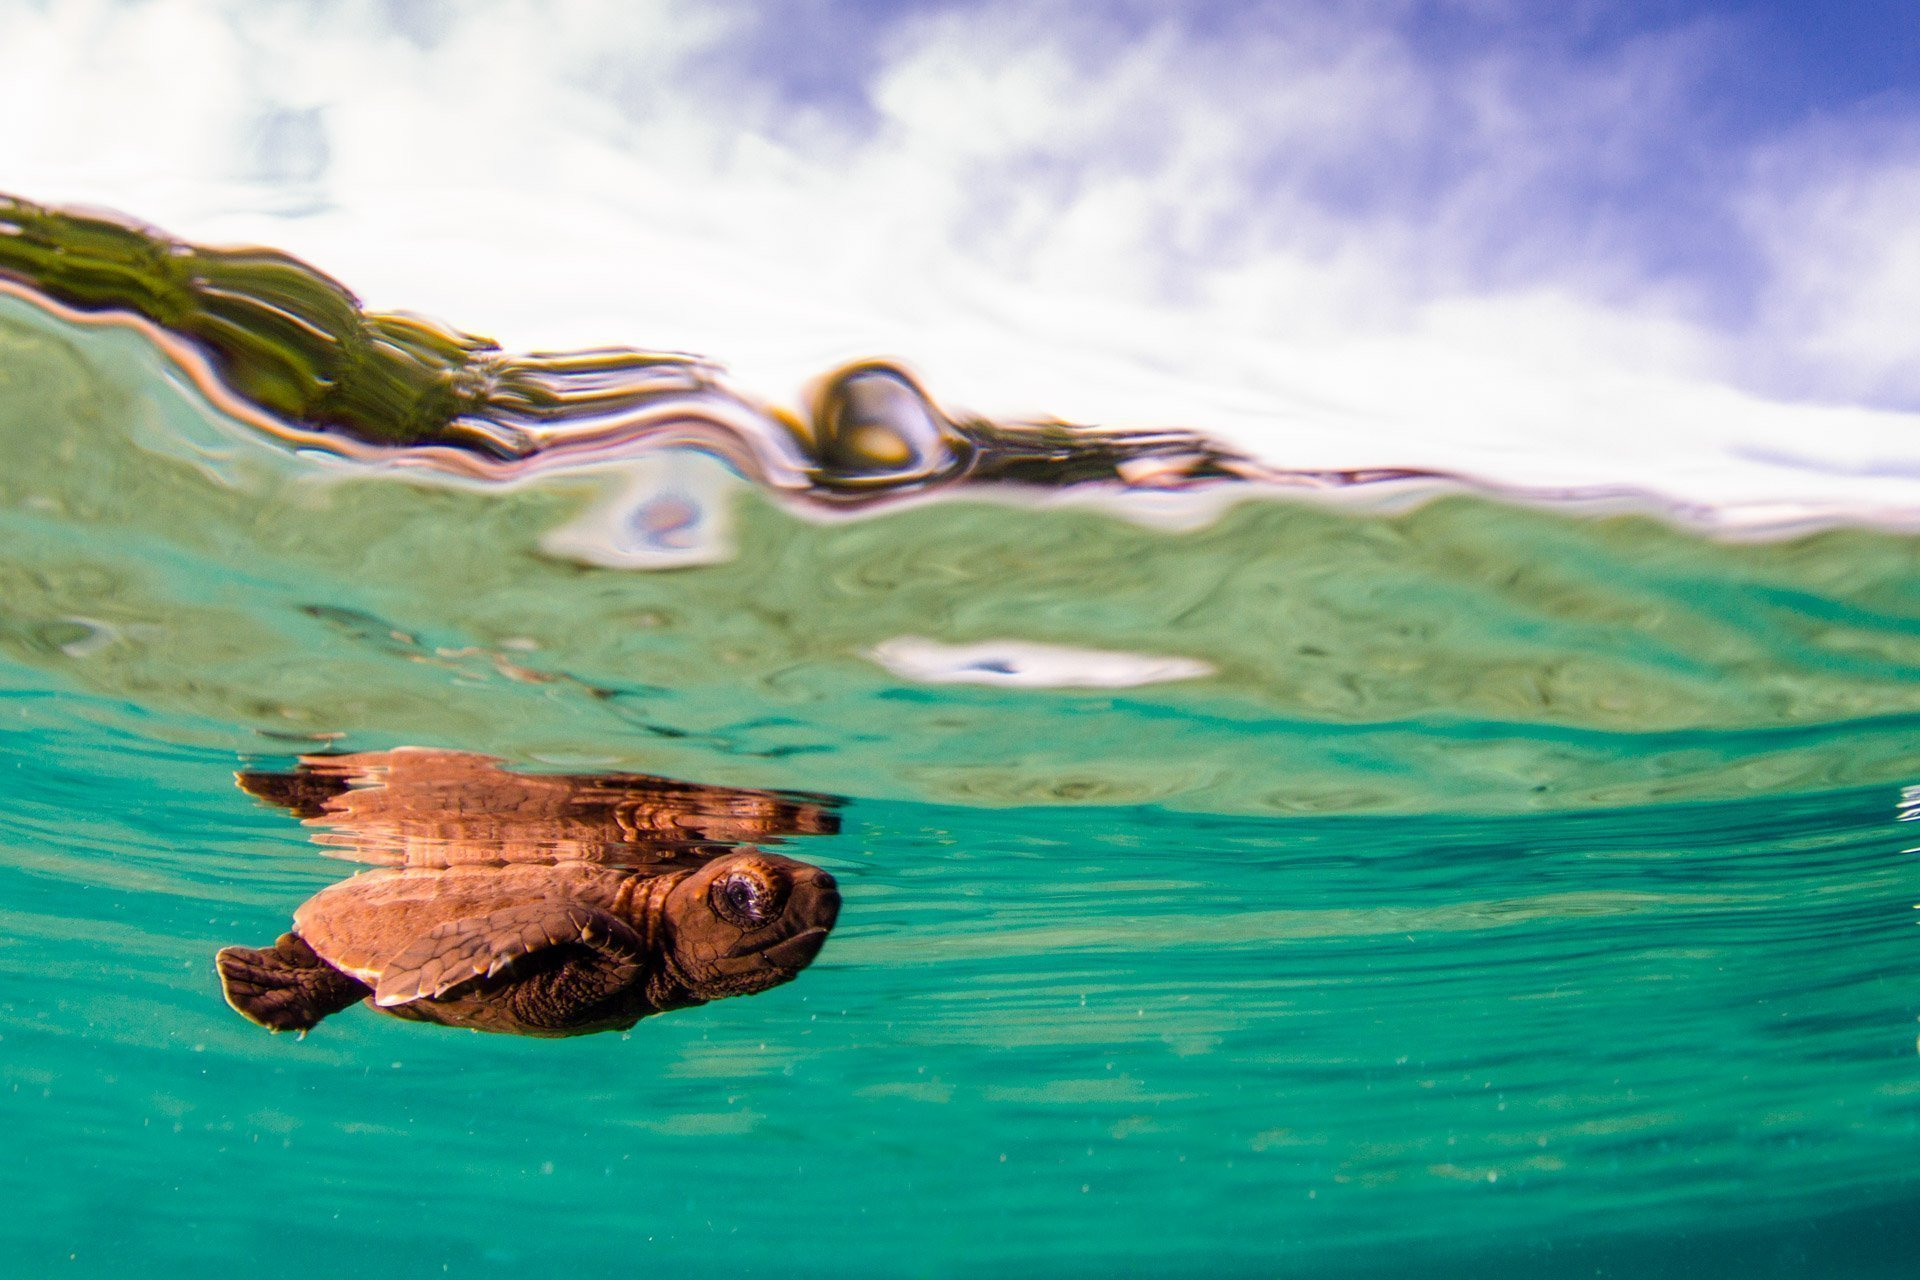 Baby turtle on the surface